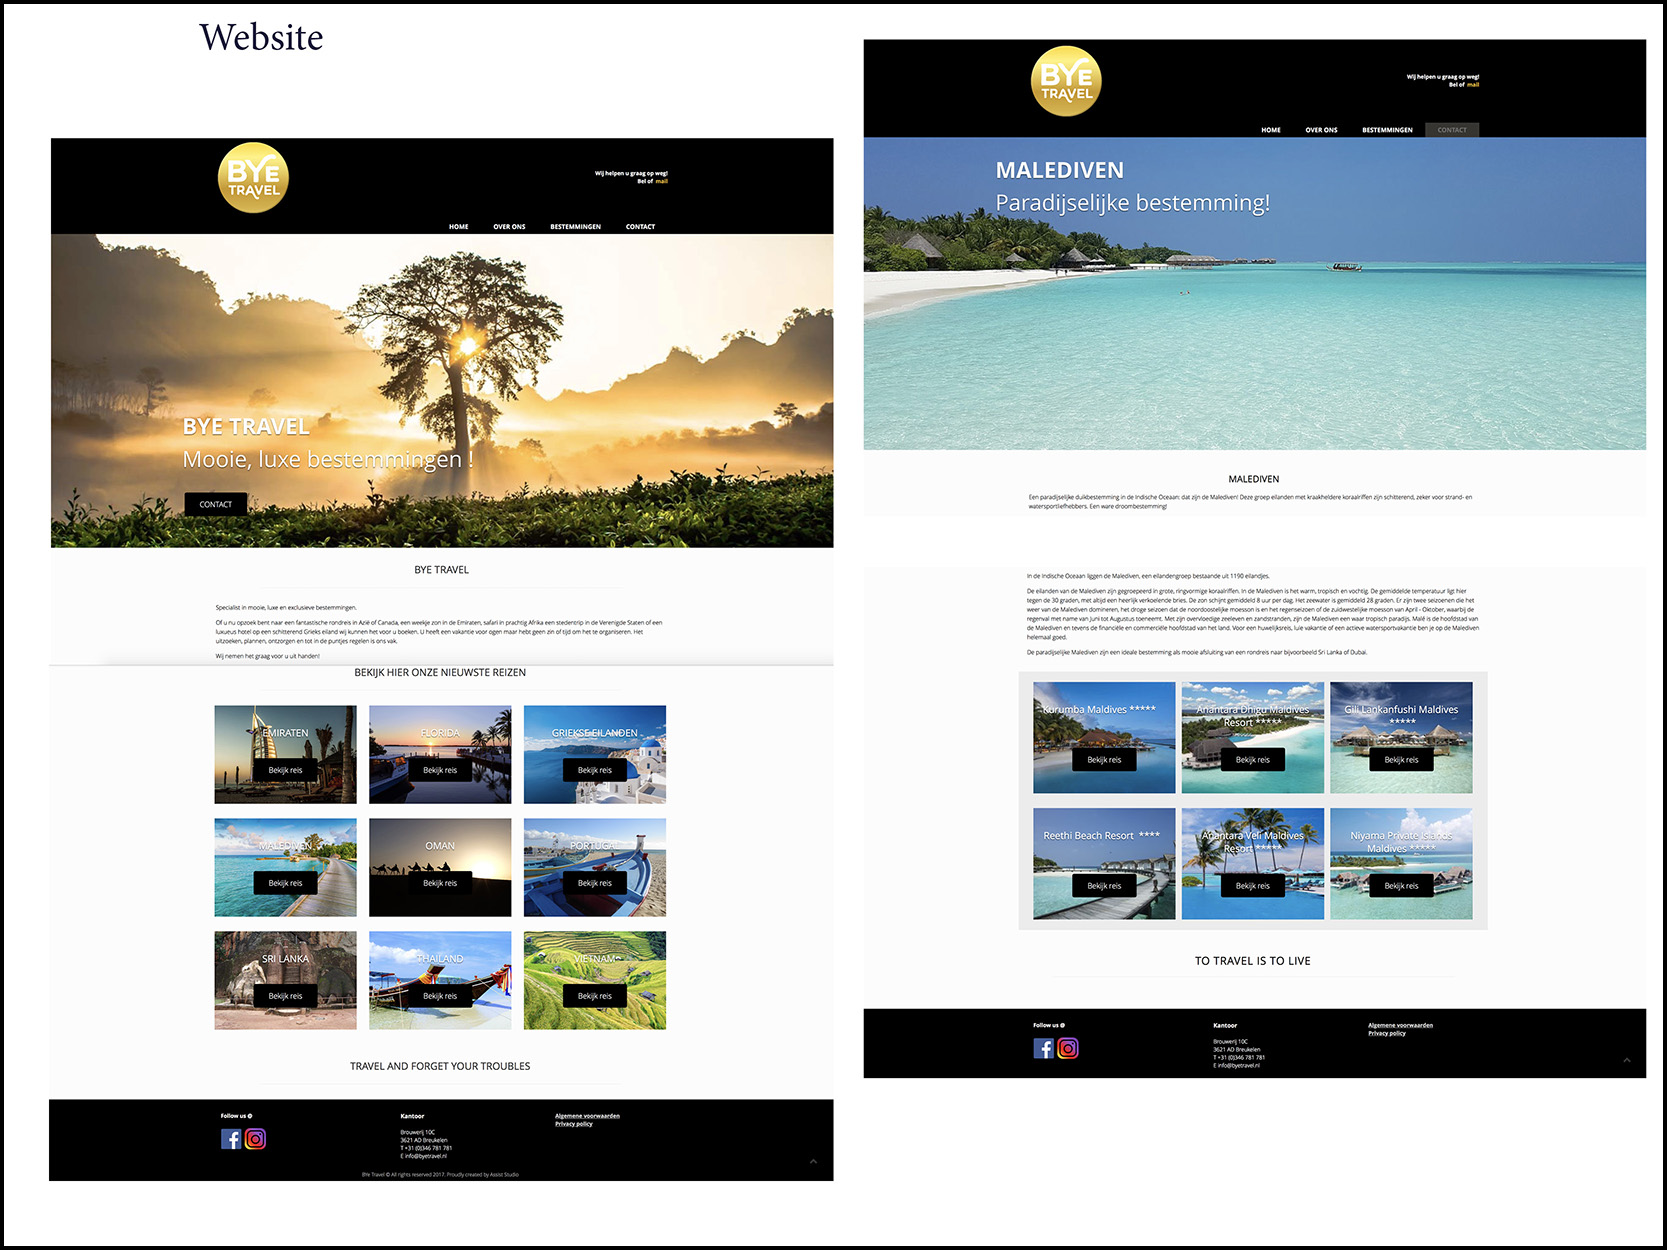 website reisbureau ByeTravel